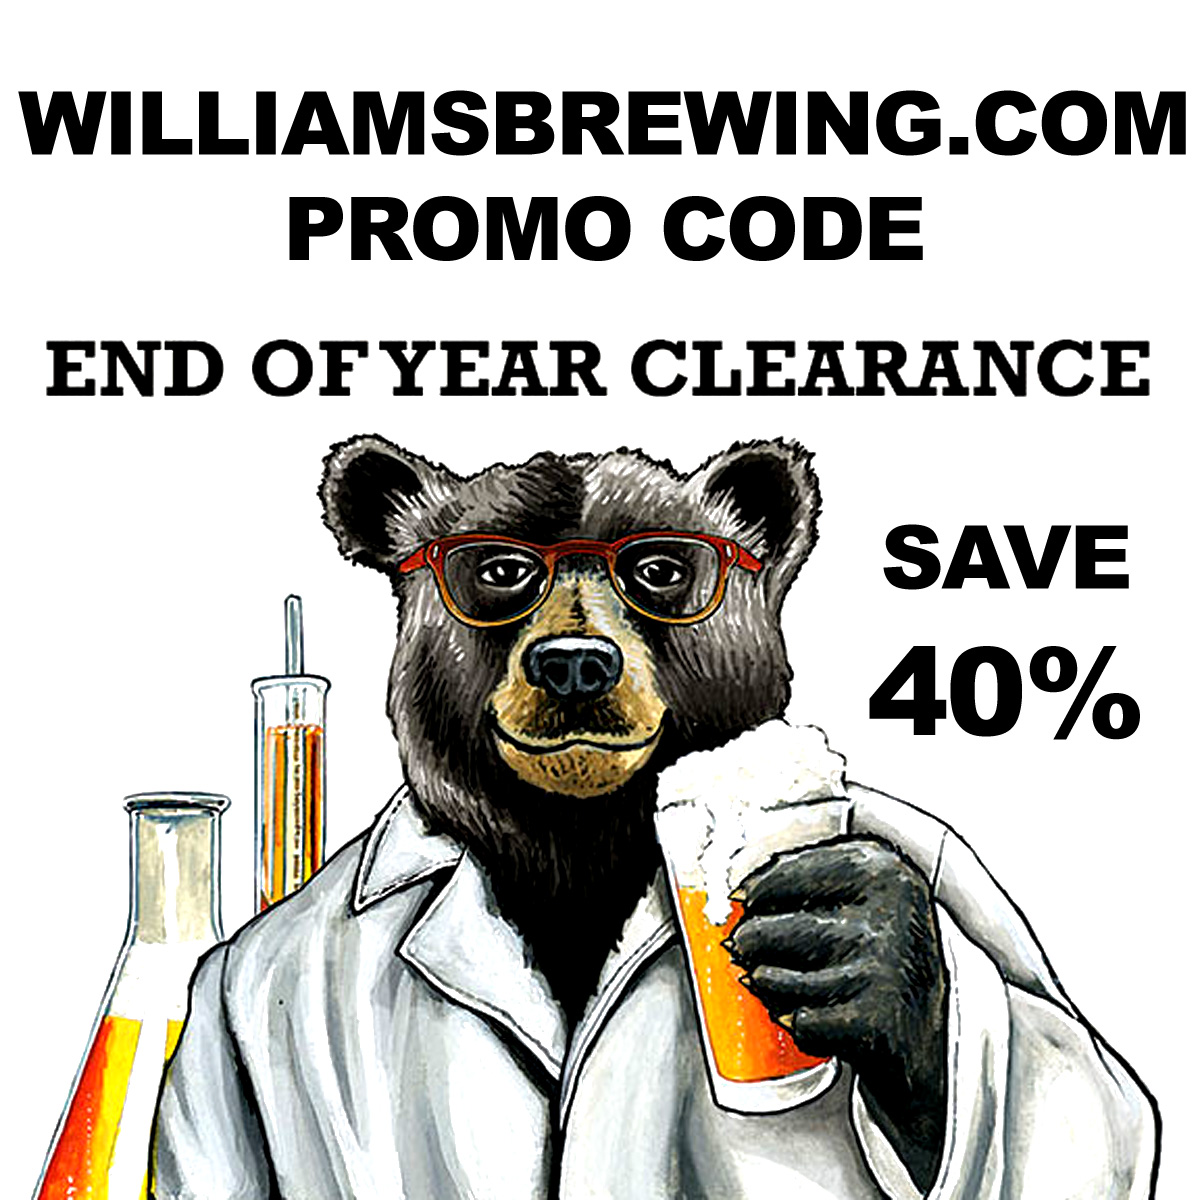 The Williams Brewing Year End Sale Going On Now. Save 40% On Home Brewing Items!